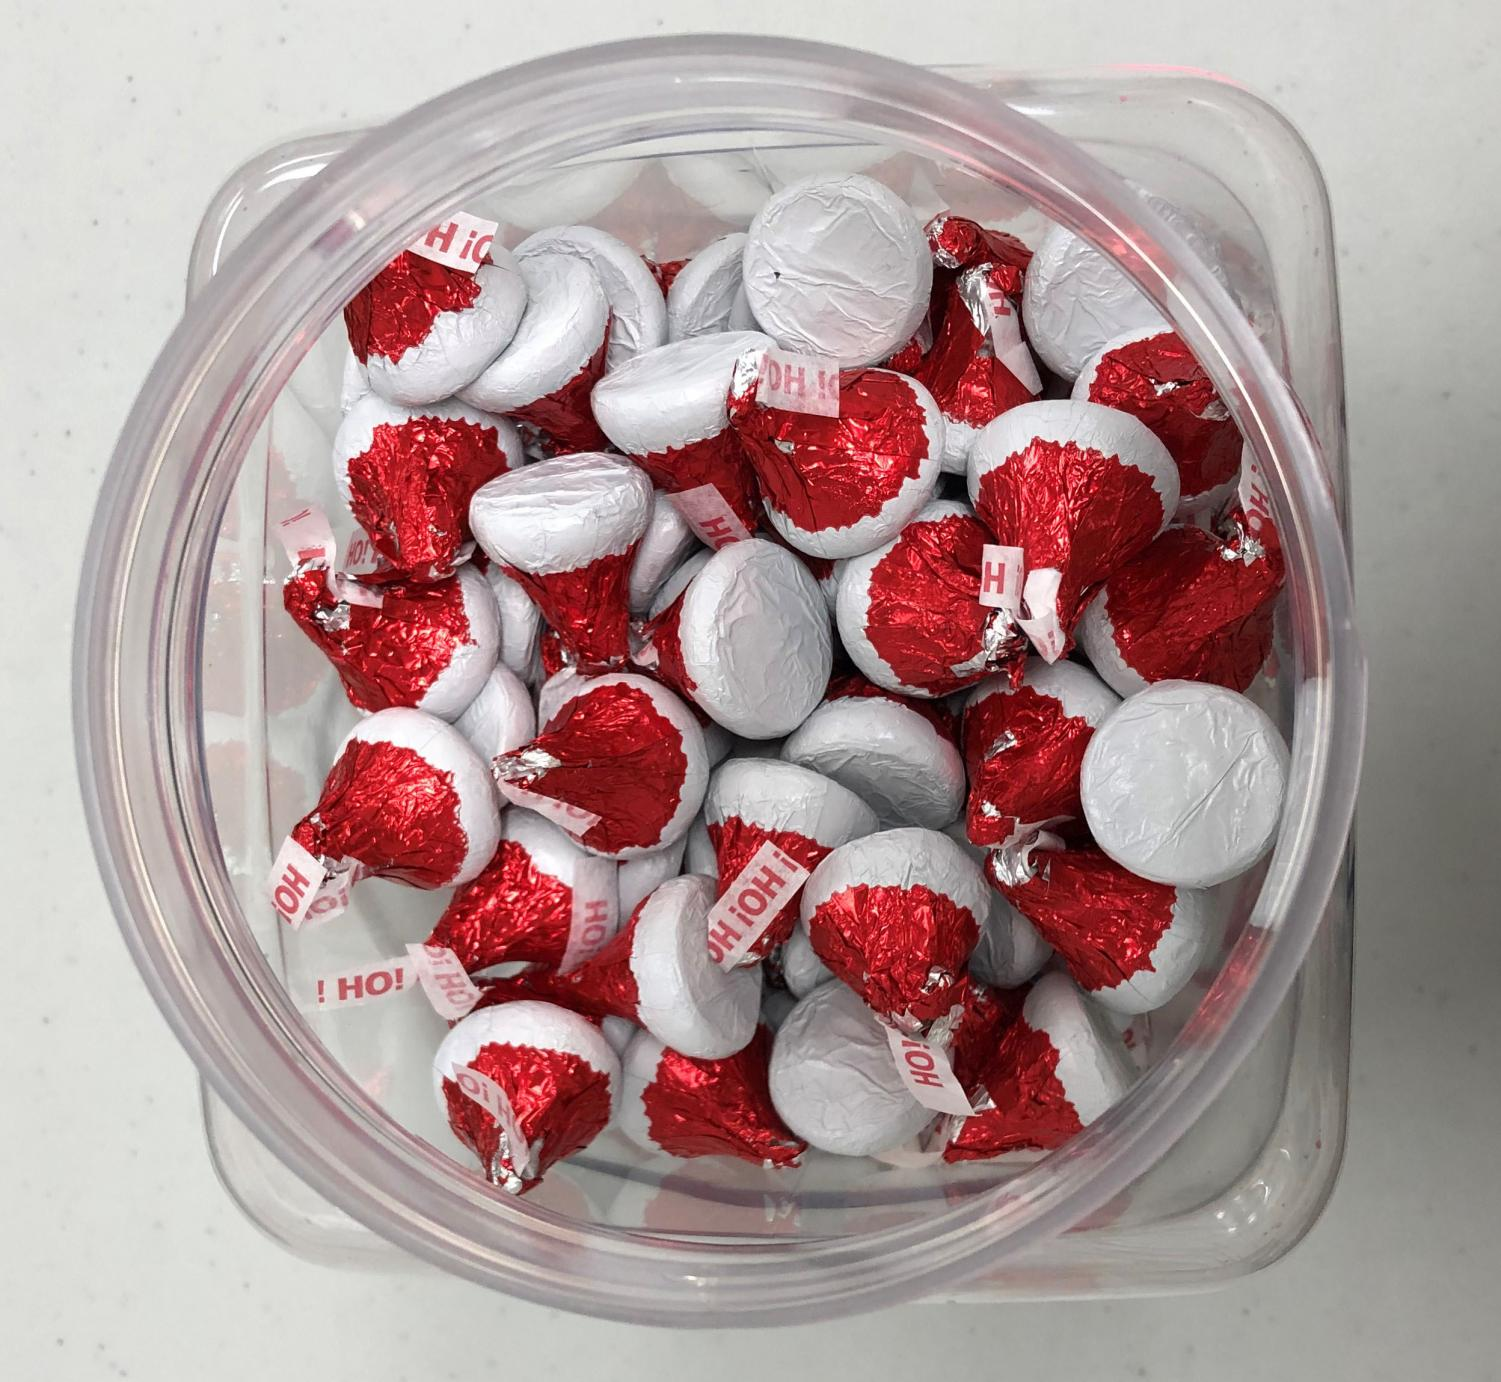 The Guidon is hosting a contest asking participants to guess how many Hershey's kisses are in this jar. The winner will receive a $20 giftcard to Cervs and second place will receive a $10 iTunes giftcard. The contest ends Dec. 19.